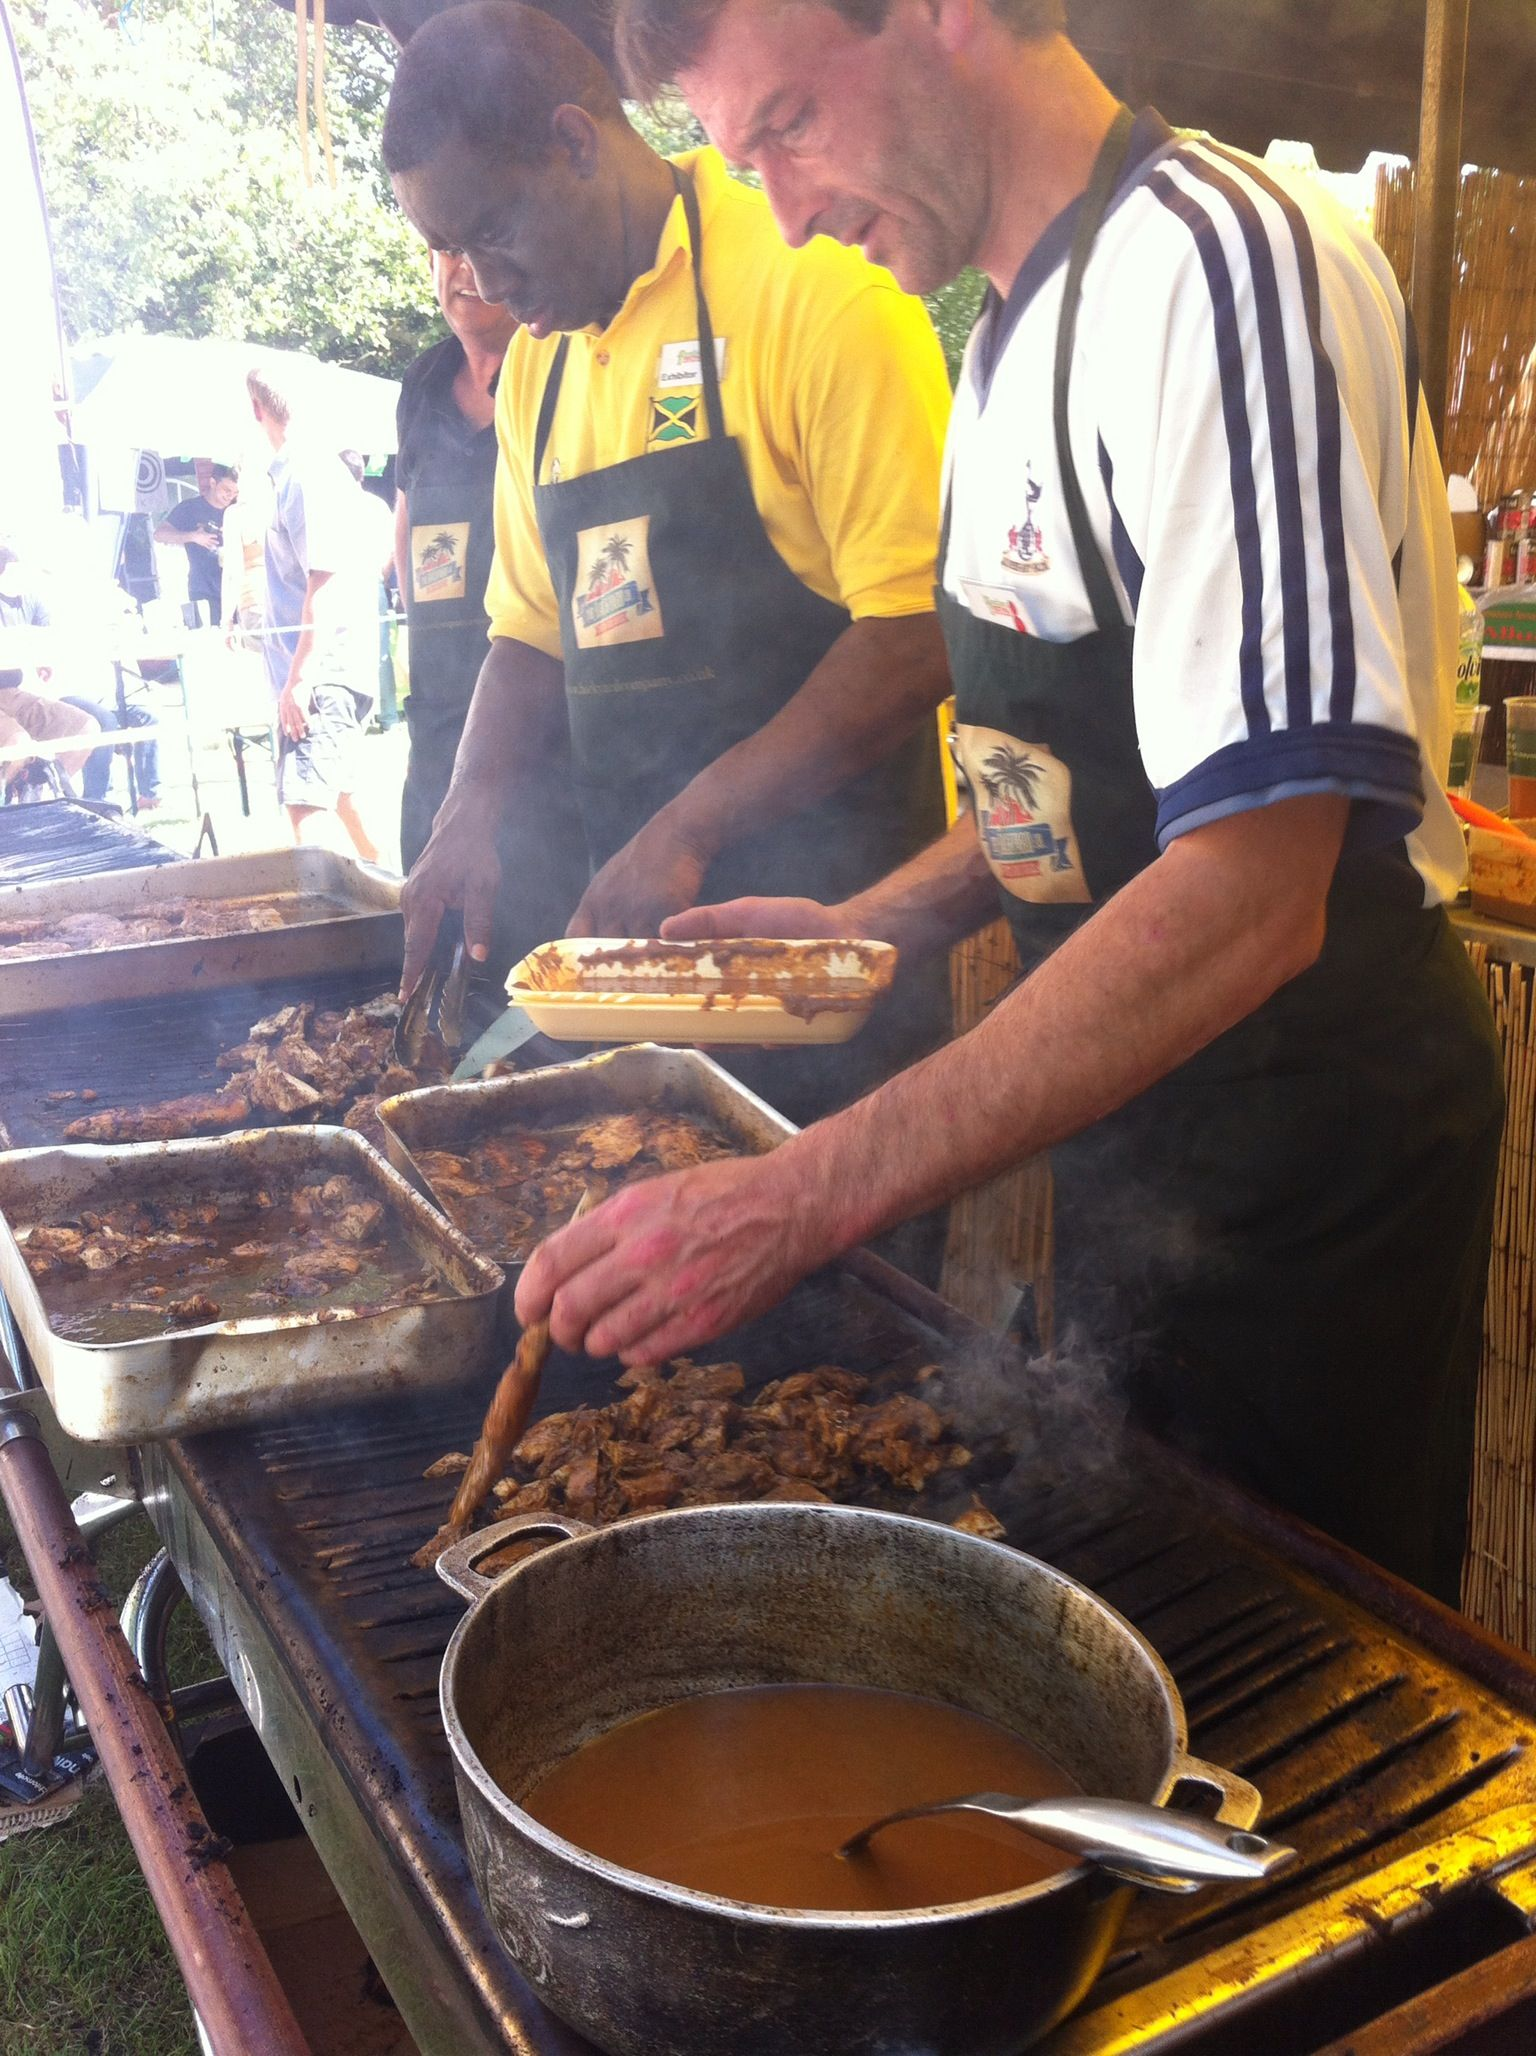 Jamaican jerk chicken stall at a food festival